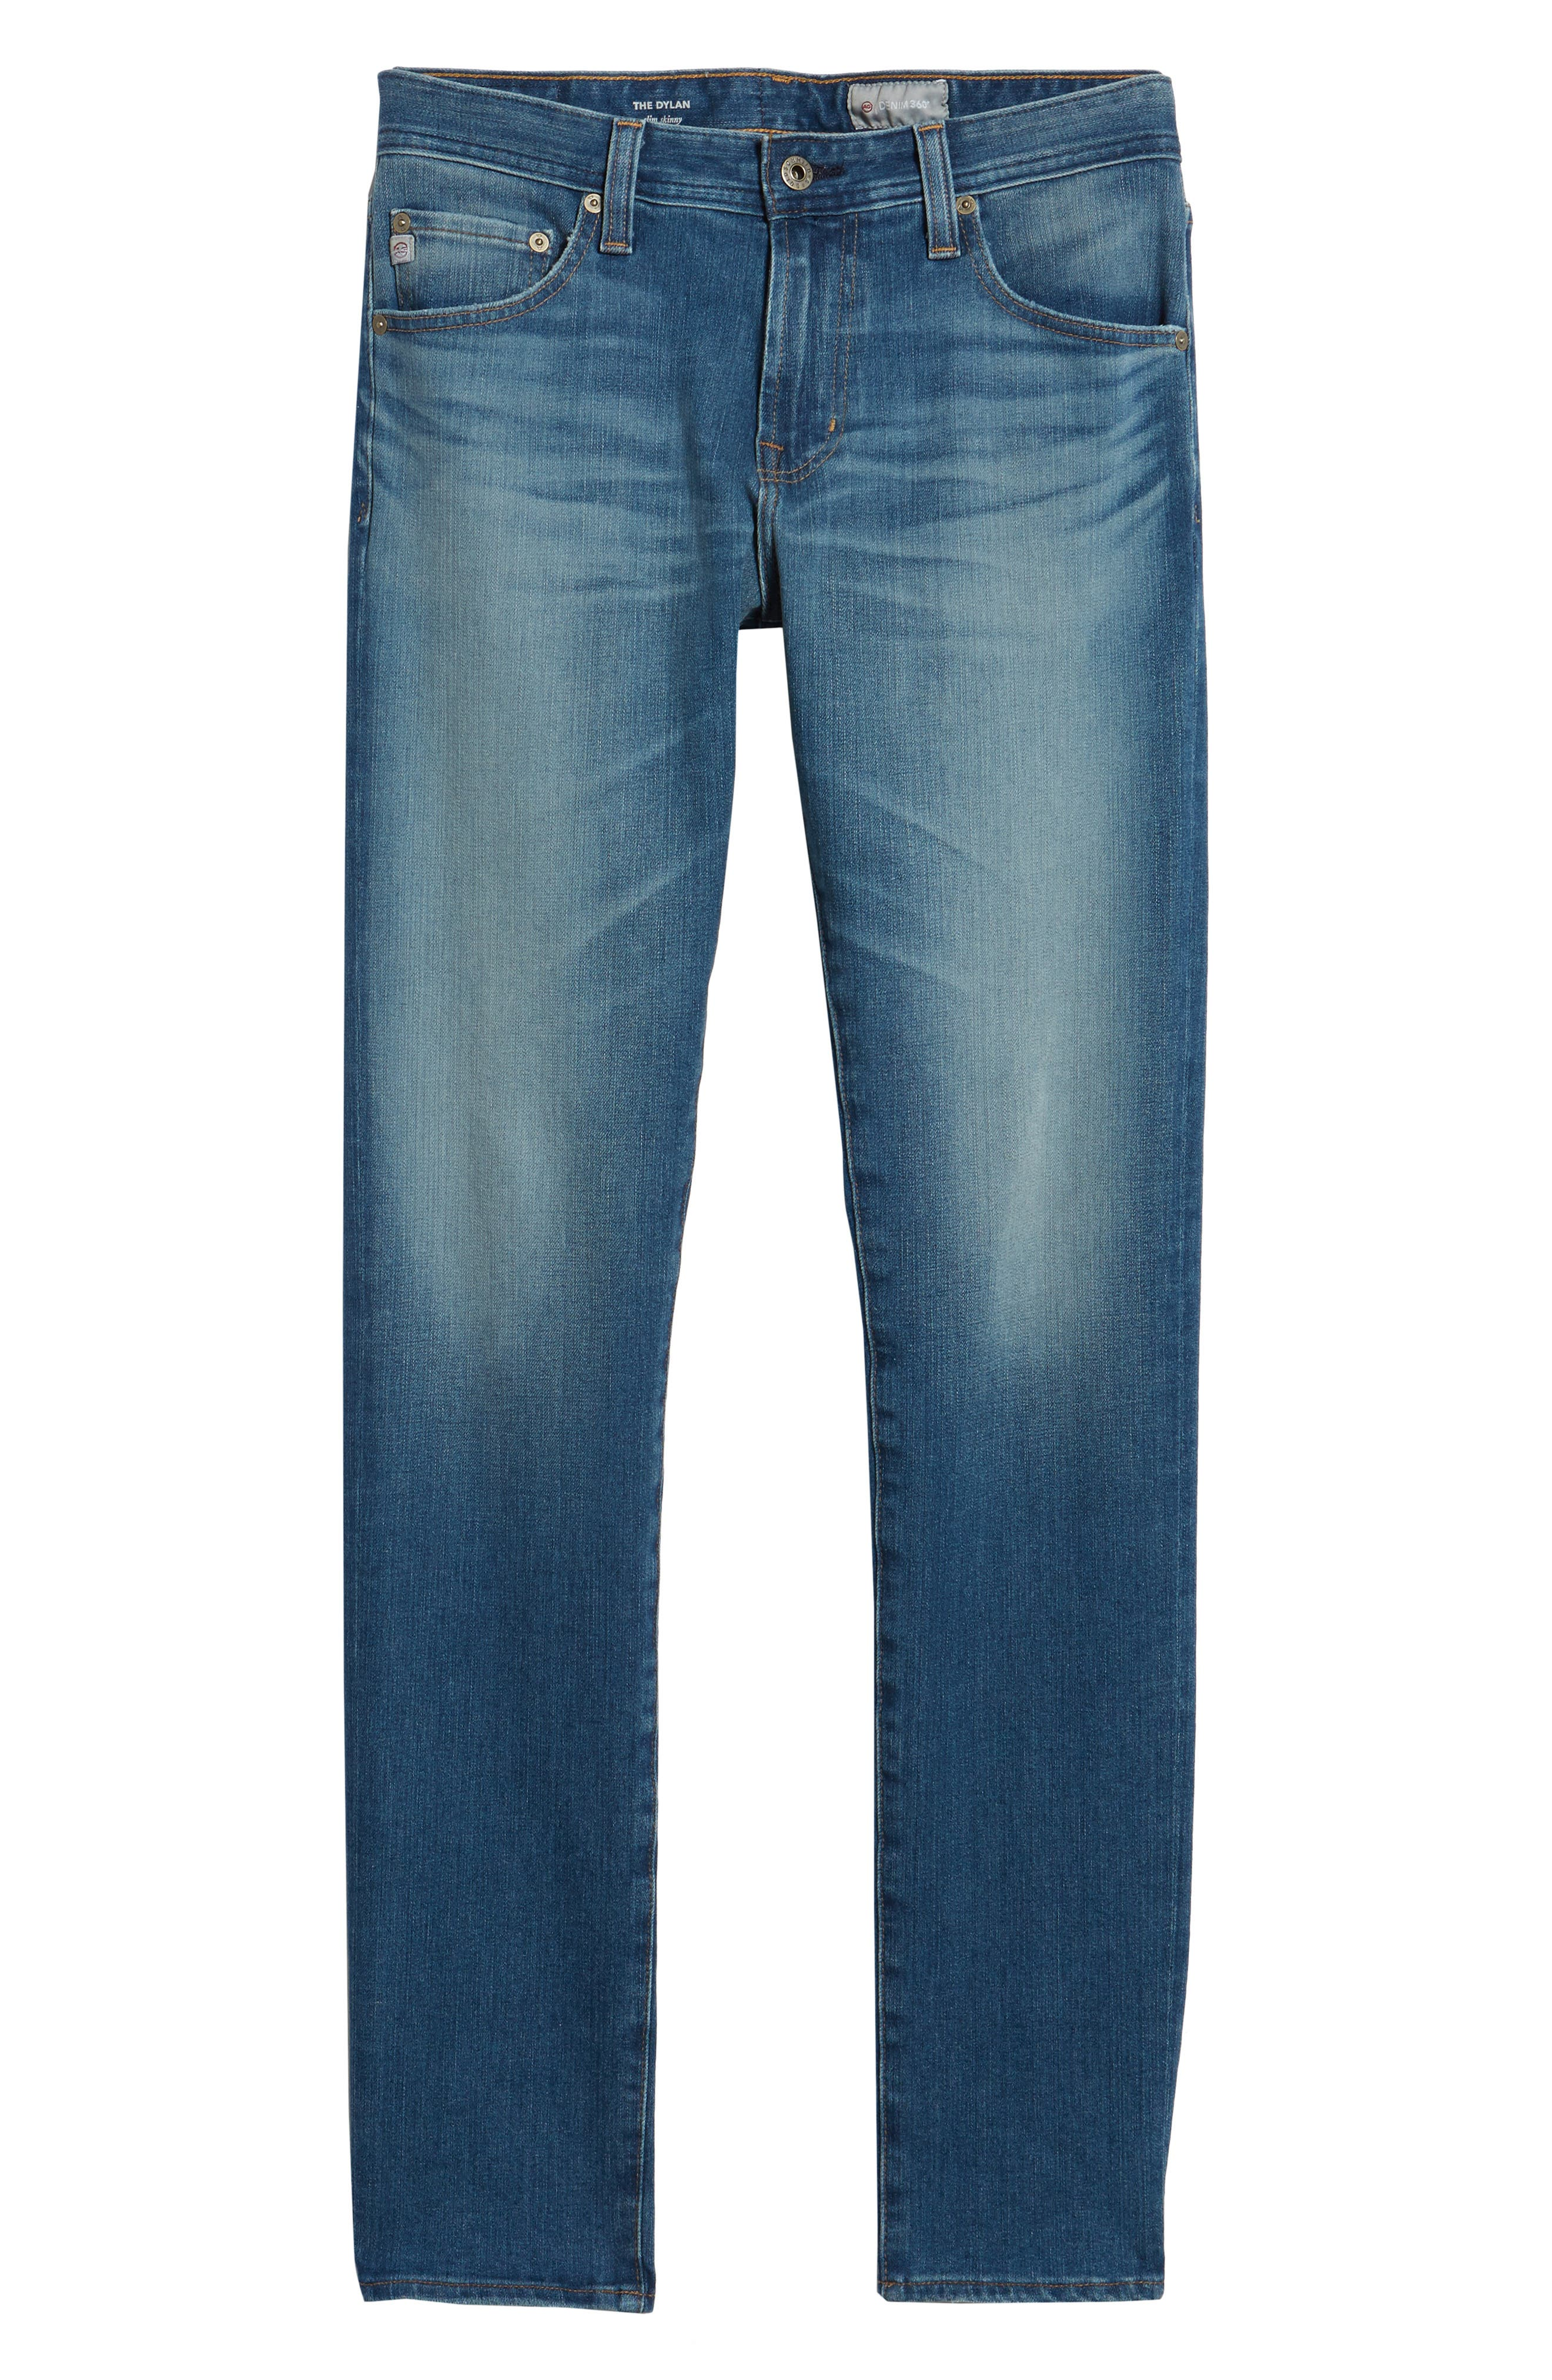 Dylan Slim Skinny Fit Jeans,                             Alternate thumbnail 6, color,                             Audition